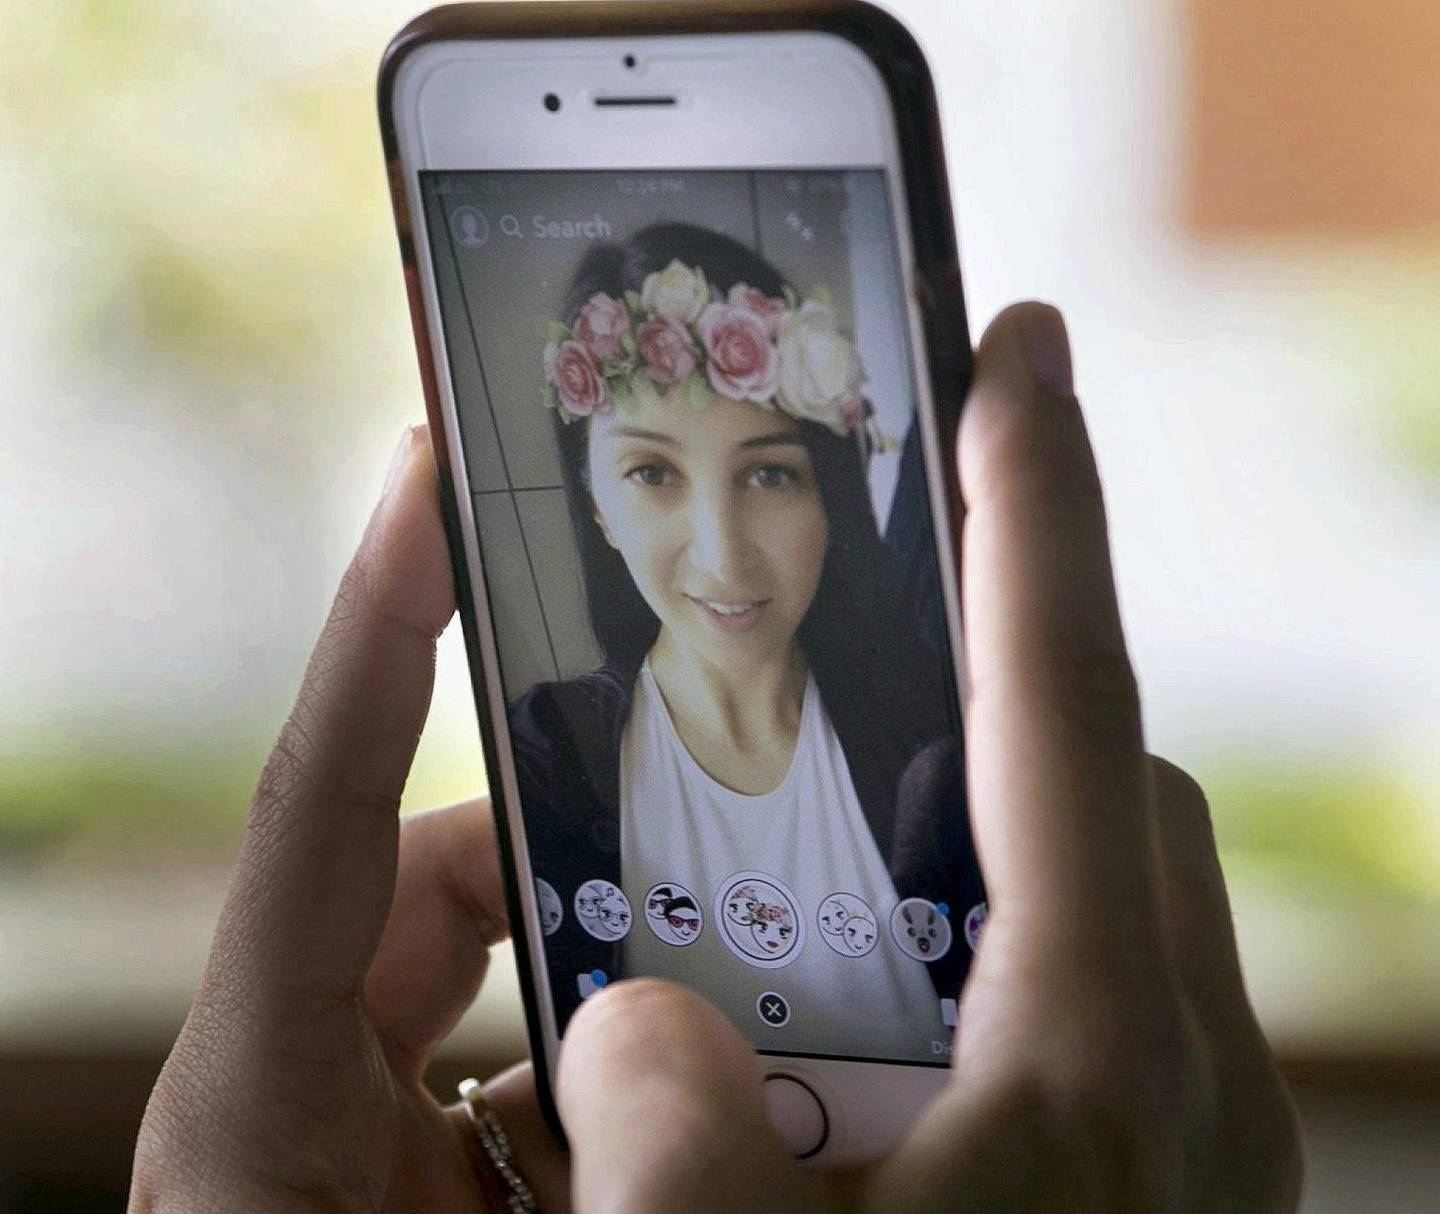 ABU DHABI, UNITED ARAB EMIRATES - AUGUST 14, 2018. A woman takes a selfie using Snapchat's face filter.(Photo by Reem Mohammed/The National)Reporter: Section:  NA